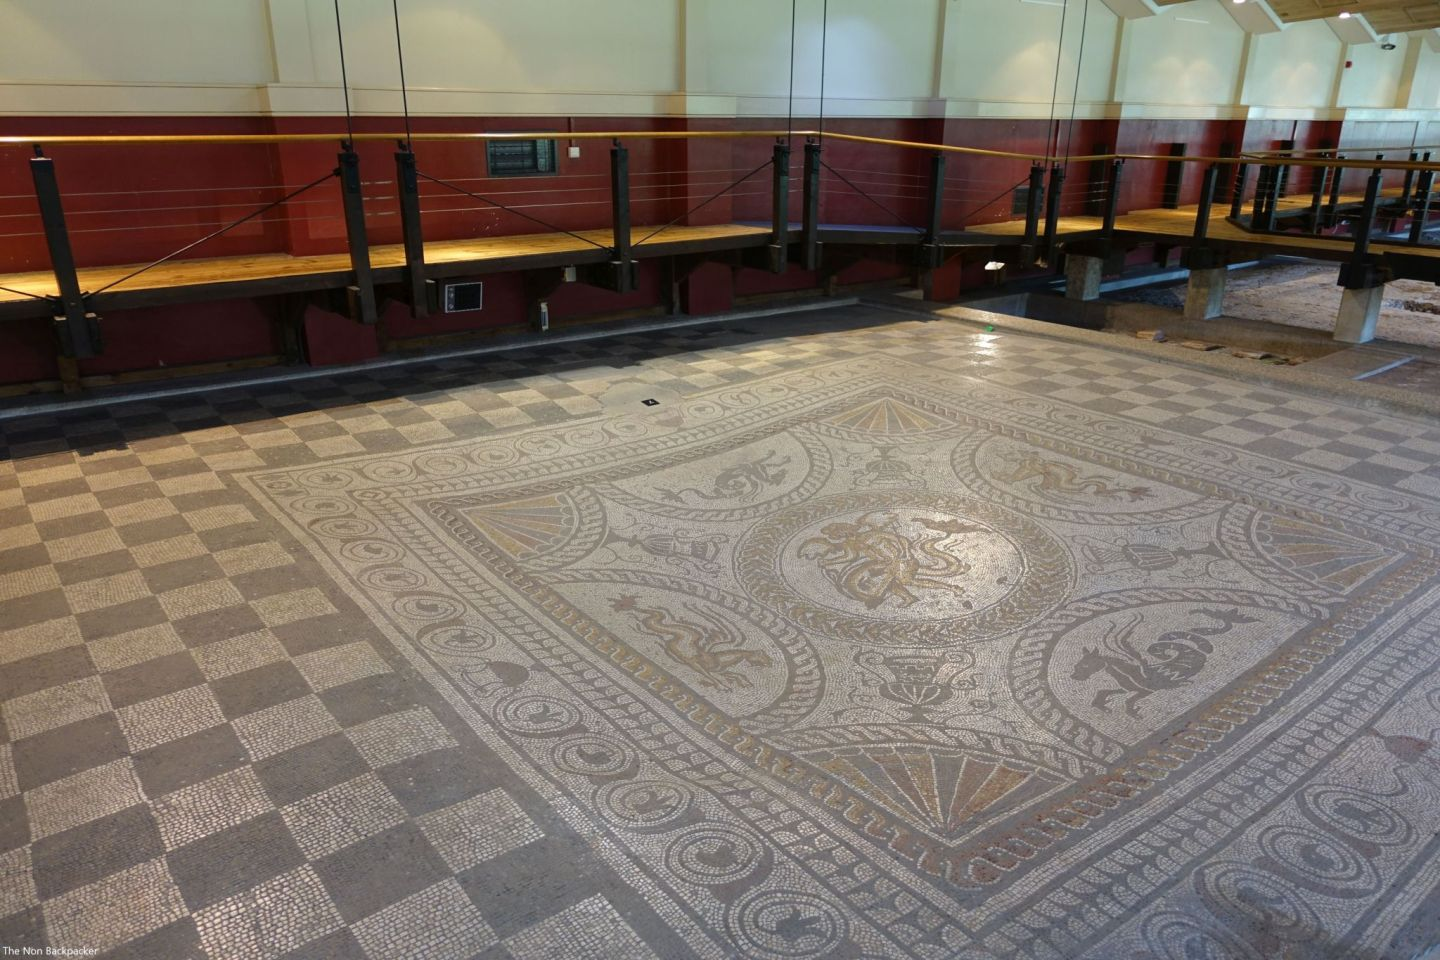 The largest mosaic at Fishbourne